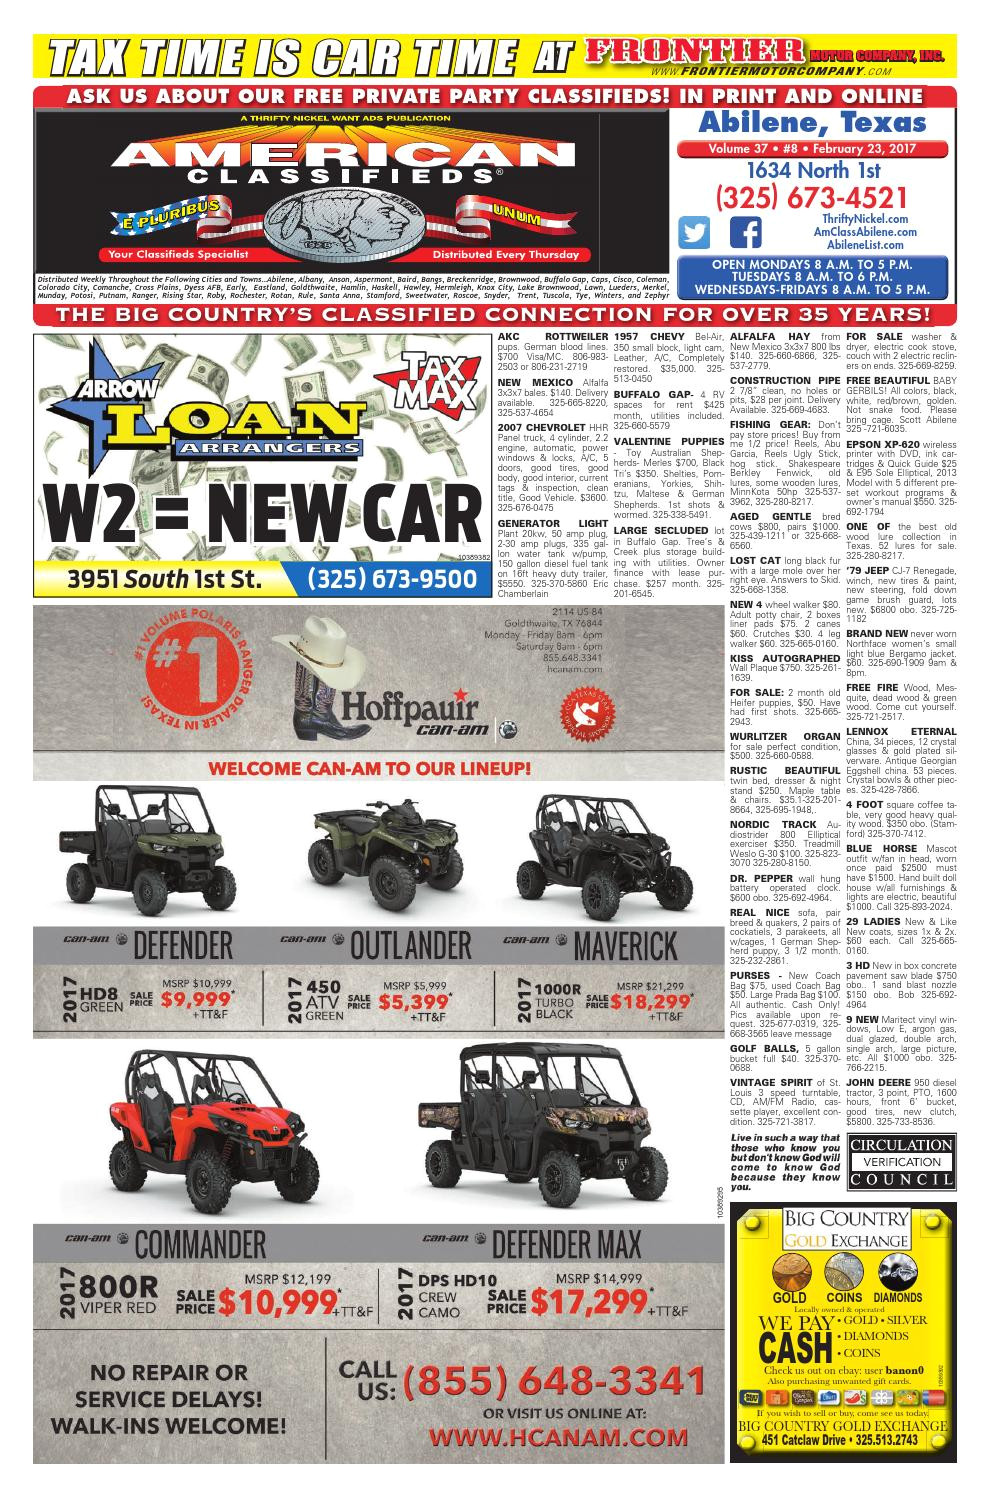 american classifieds abilene 02 23 17 by american classifieds abilene texas issuu